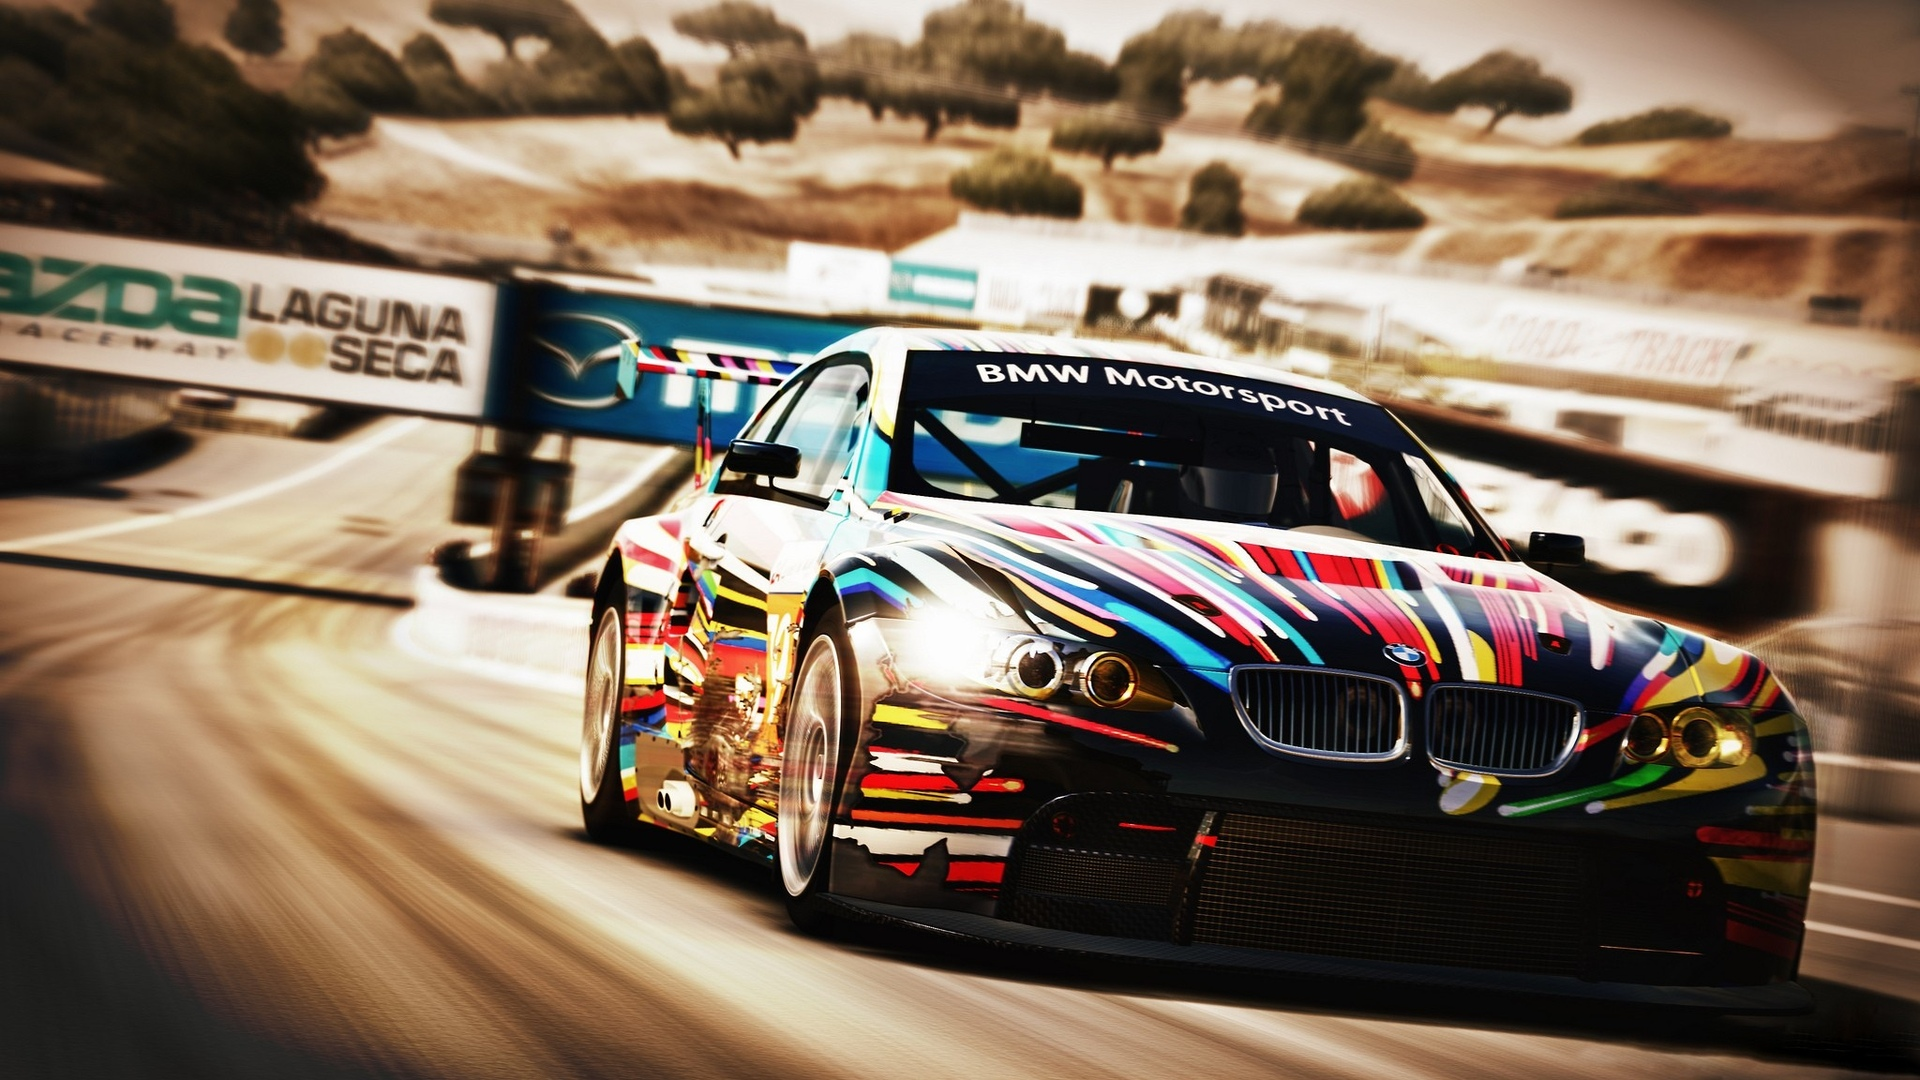 Forza Motorsports Vehicles Cars Bmw Racing Race Car Track Wallpaper